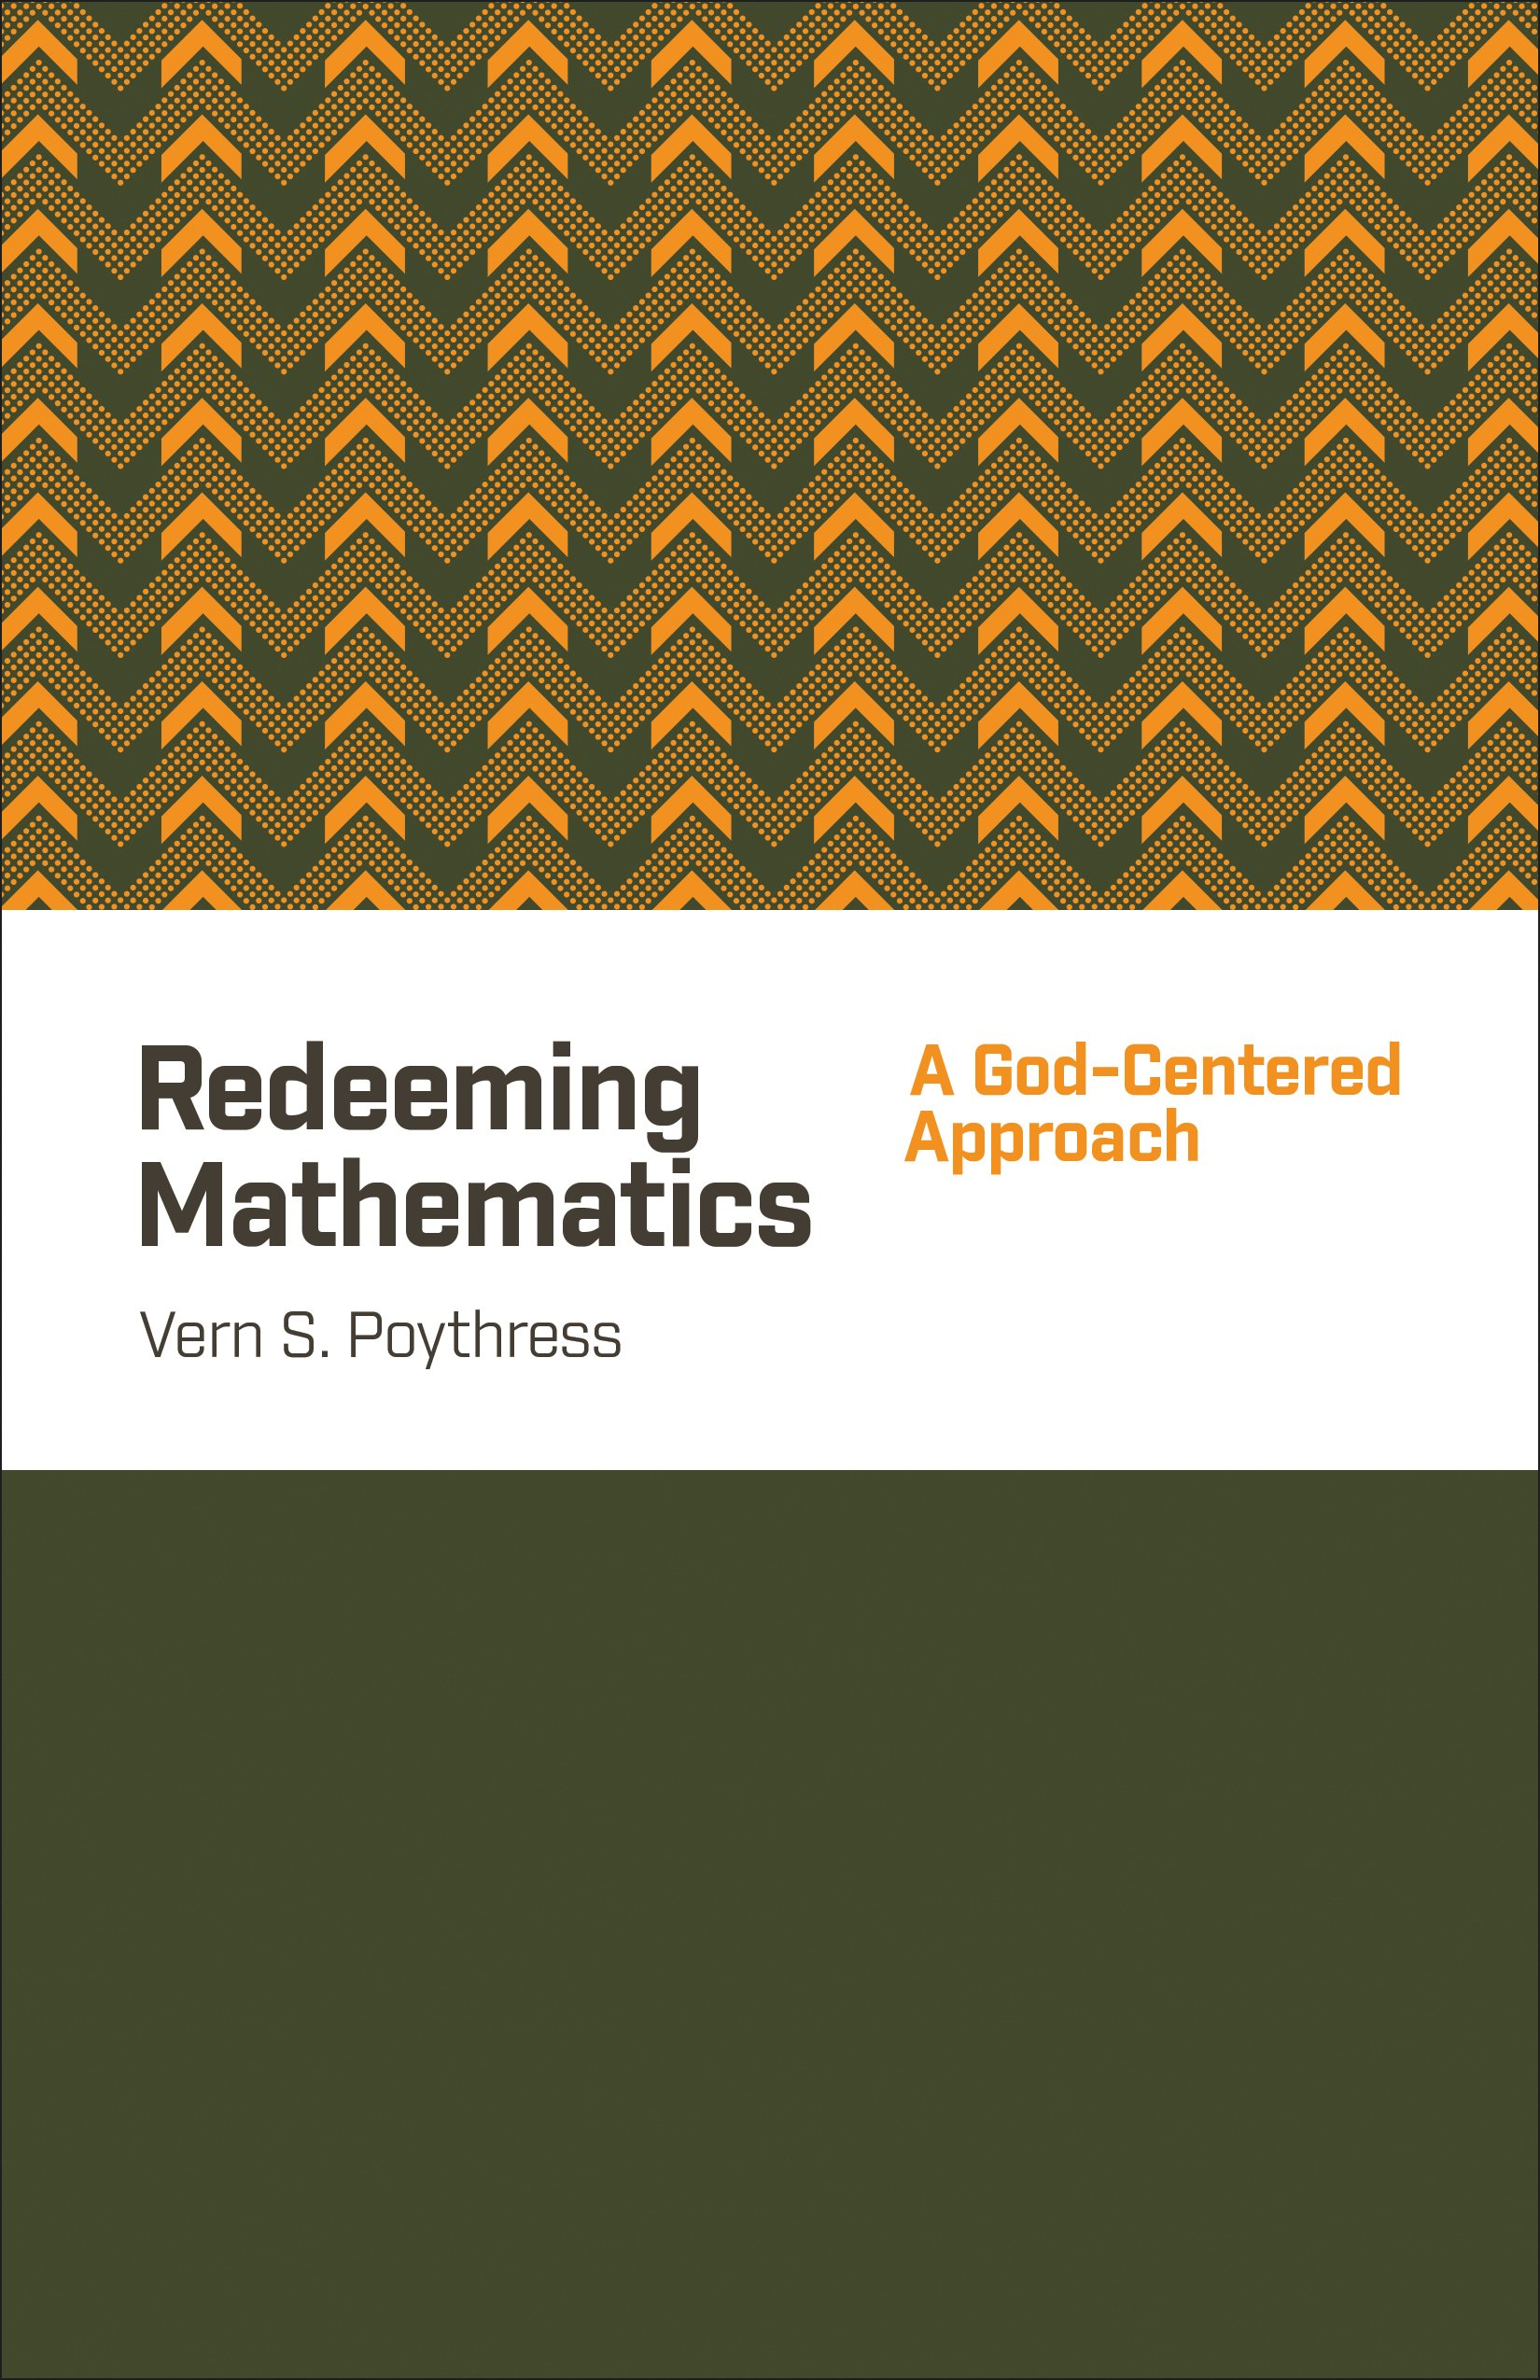 Redeeming Mathematics: A God-Centered Approach free download